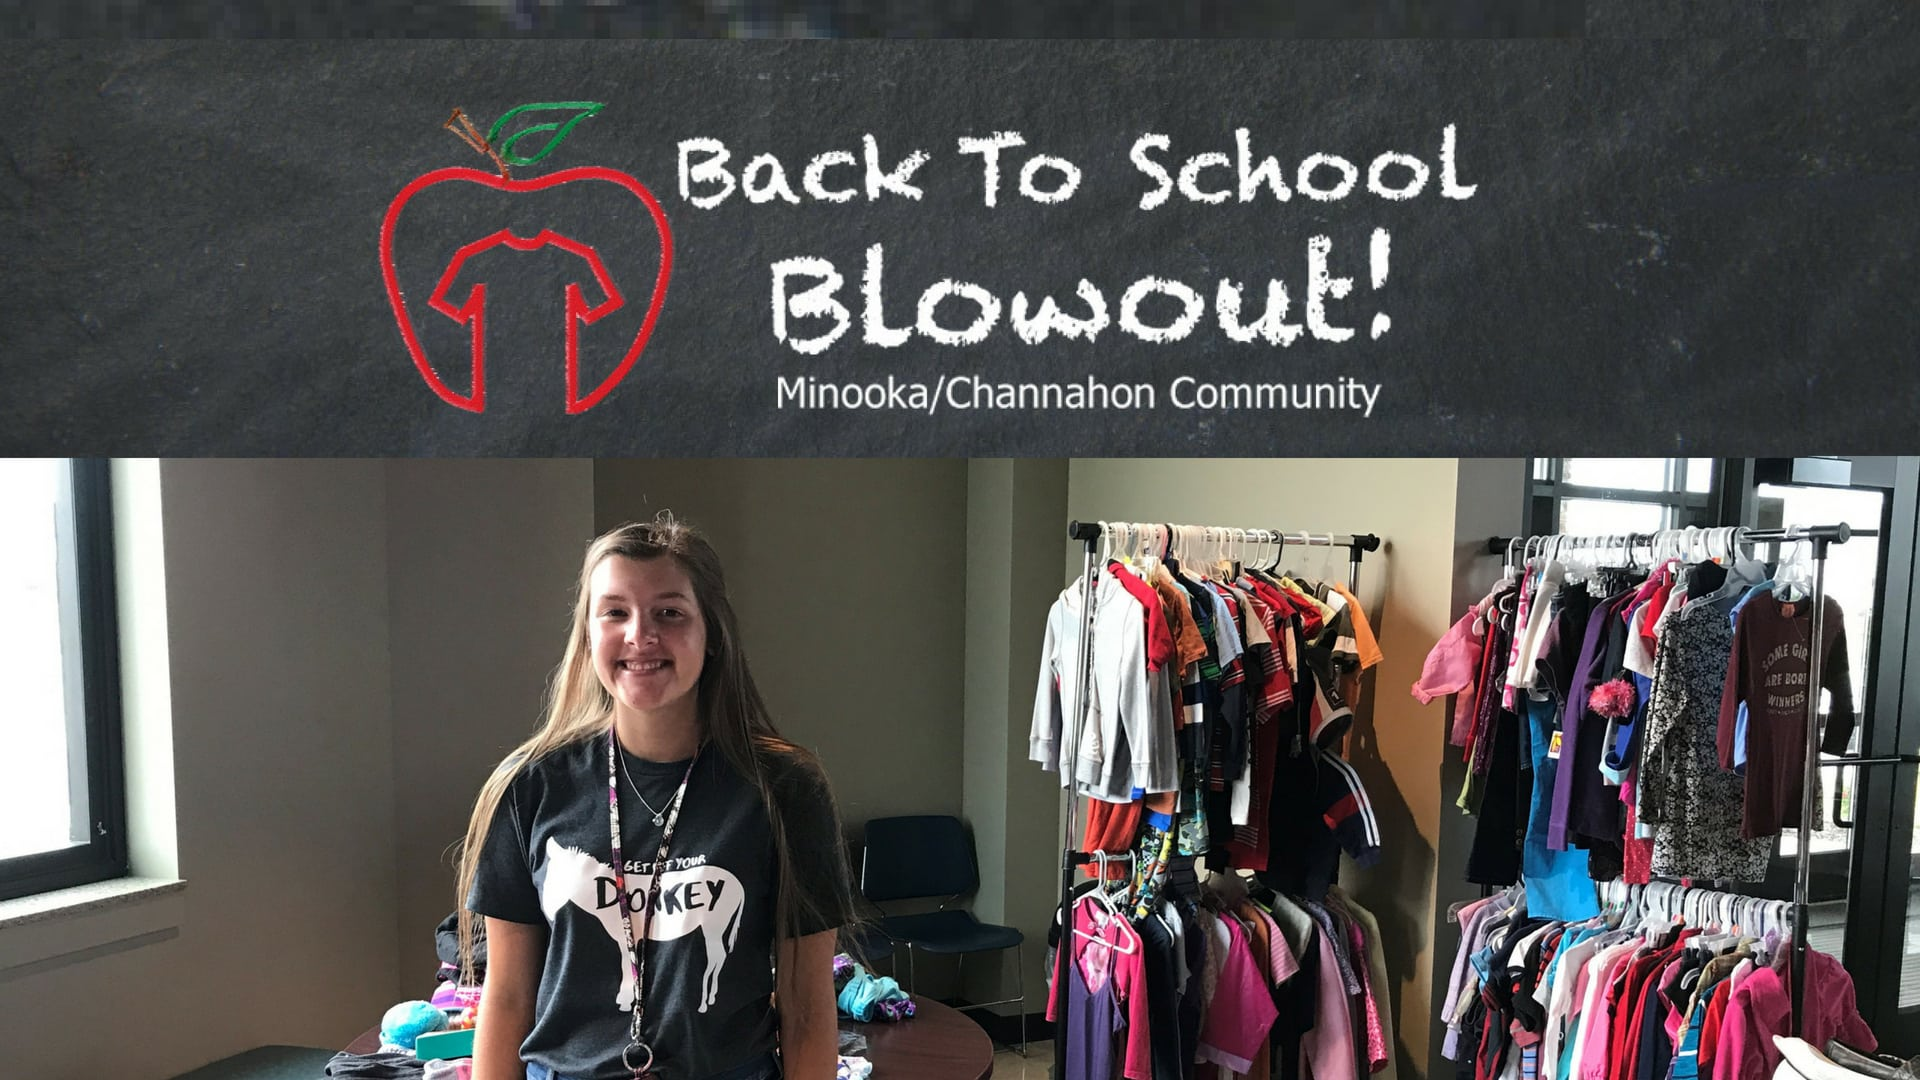 Back to School blowout provides gently used back to school clothes to families in Minooka, Channahon and surrounding communities